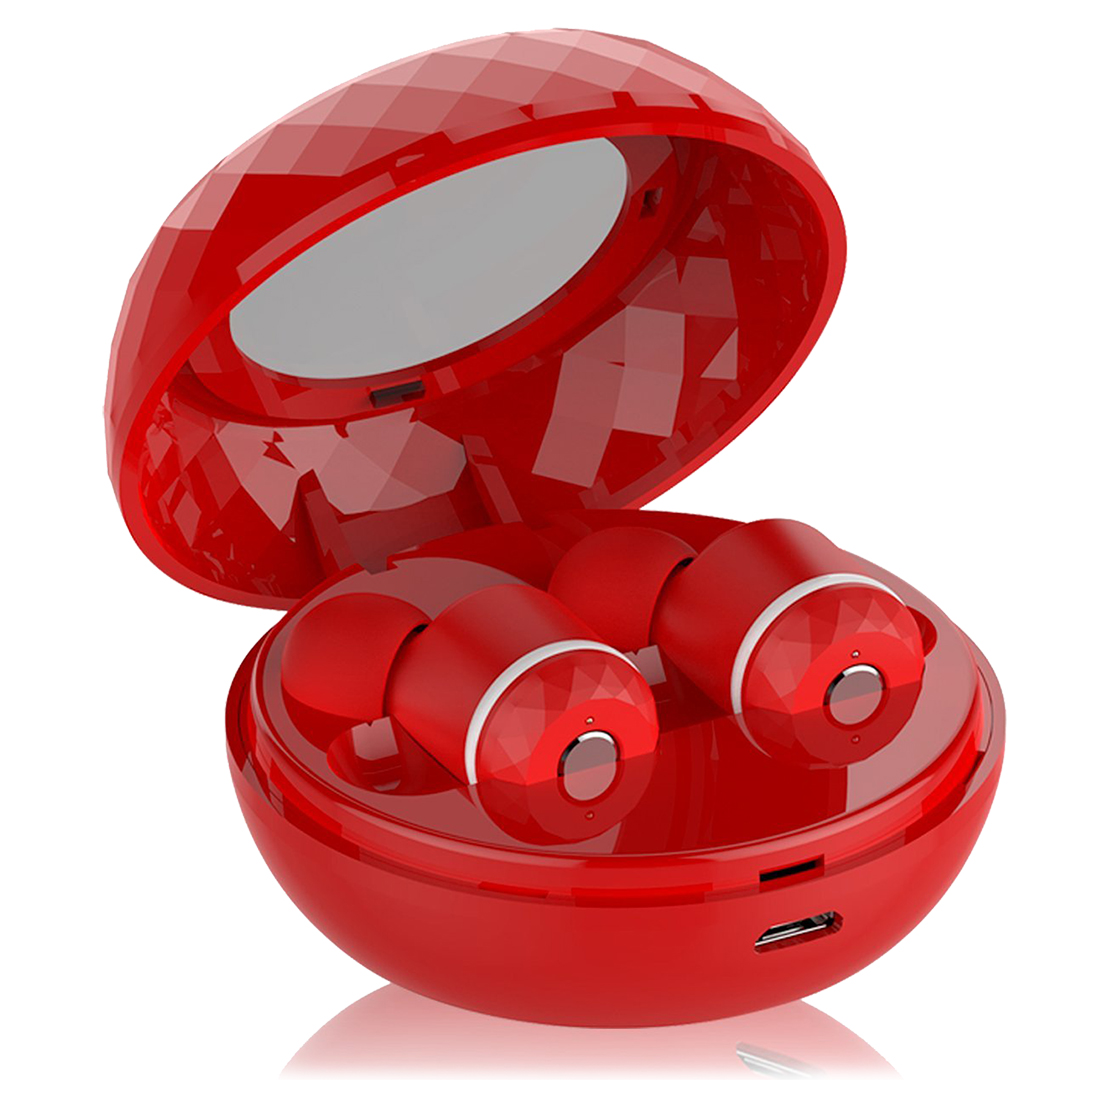 HOT-Wireless Earbuds, True Wireless Stereo Bluetooth V4.1 Headphones with Portable Charging Case &amp; Noise Reduction Earphones<br>